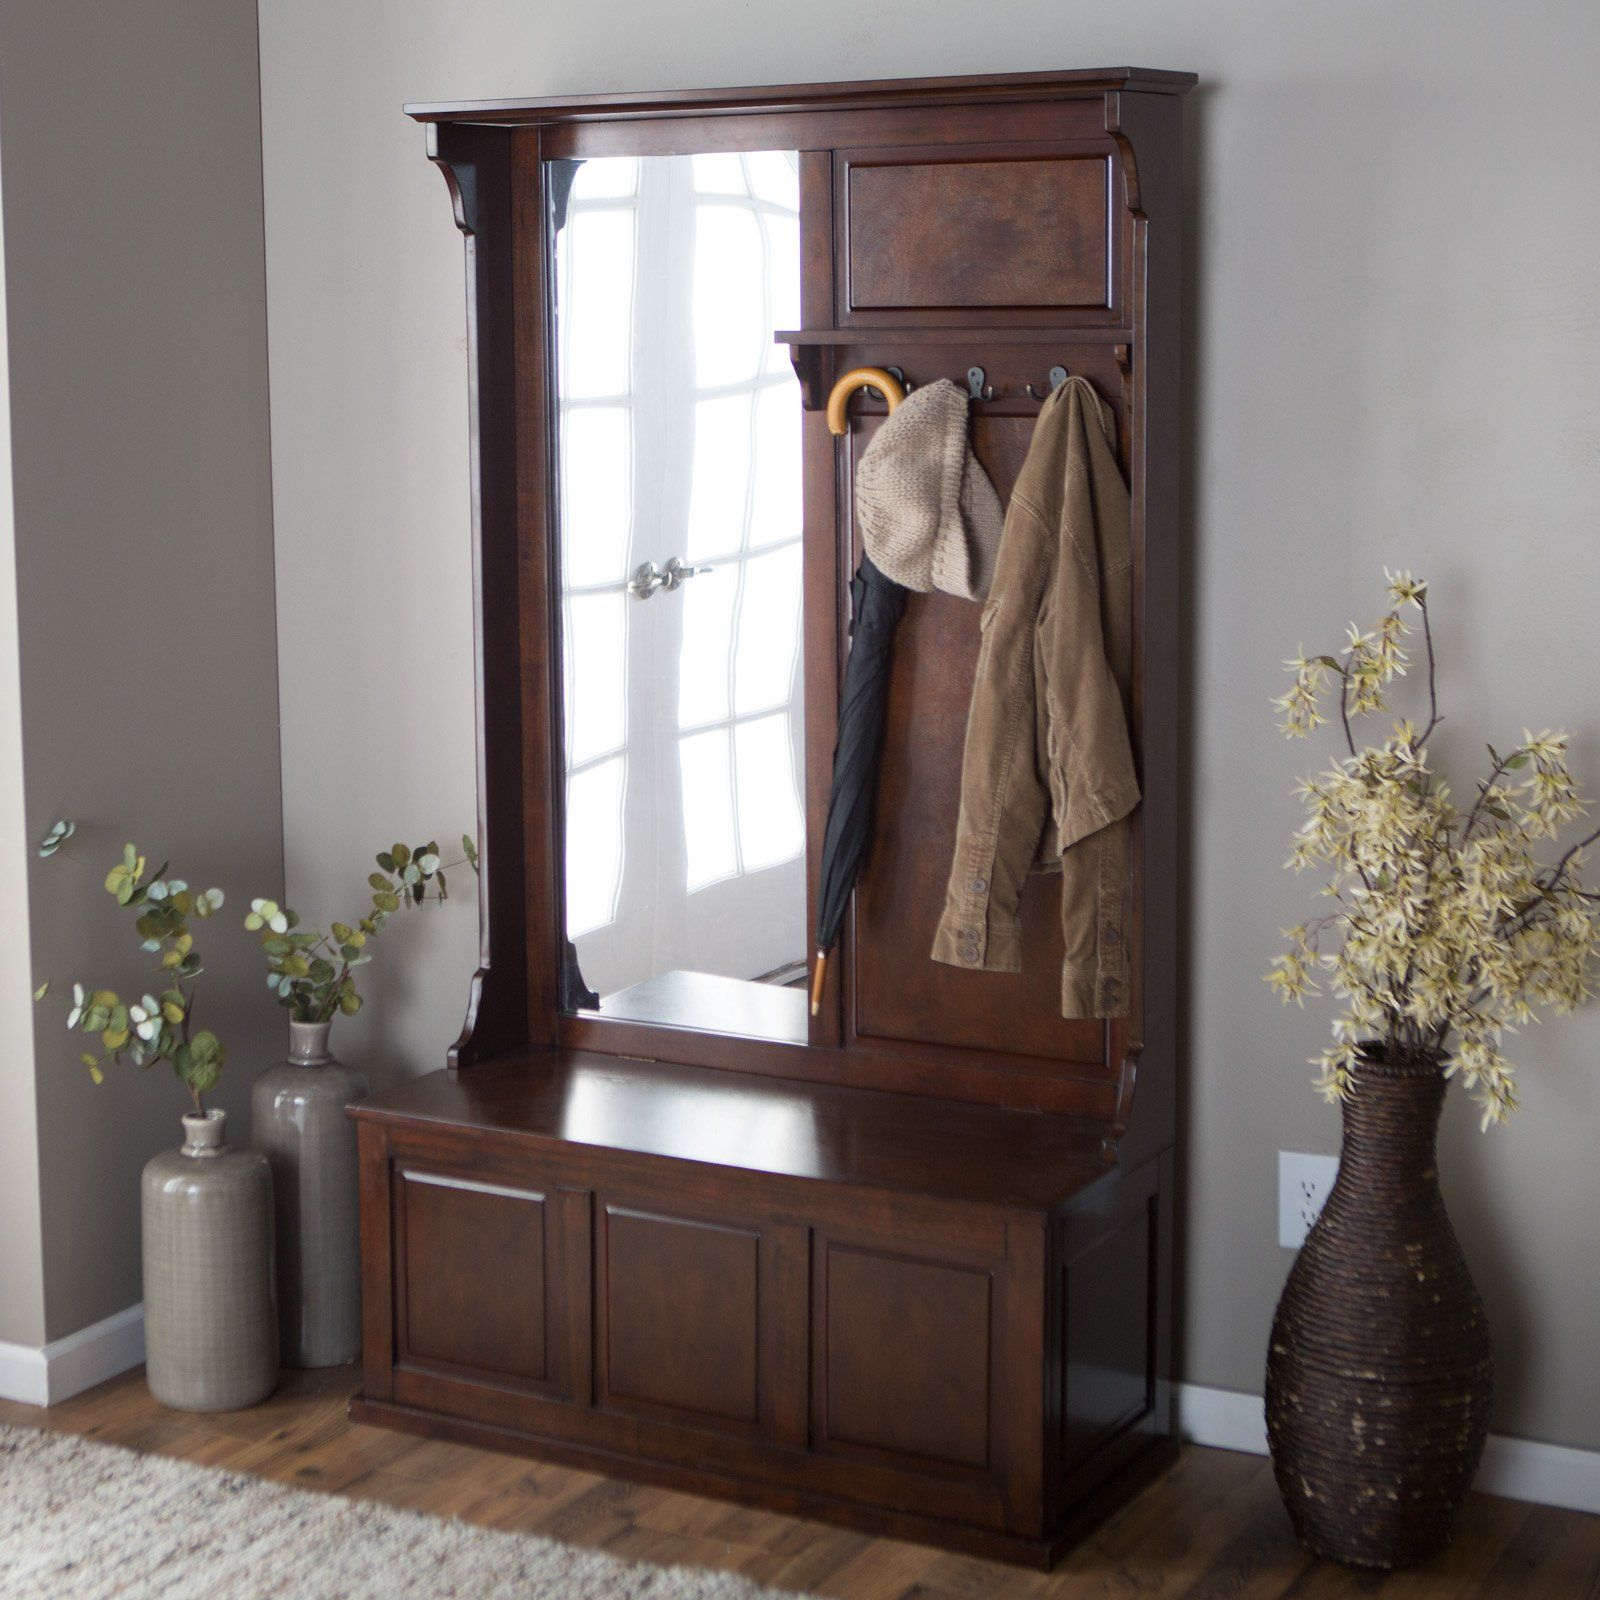 Delightful ... Keep Your Entryway Or Mudroom Organized And Attractive With The Belham  Living Lynden Hall Tree With Vertical Mirror. Beautiful Wood Construction In  A .